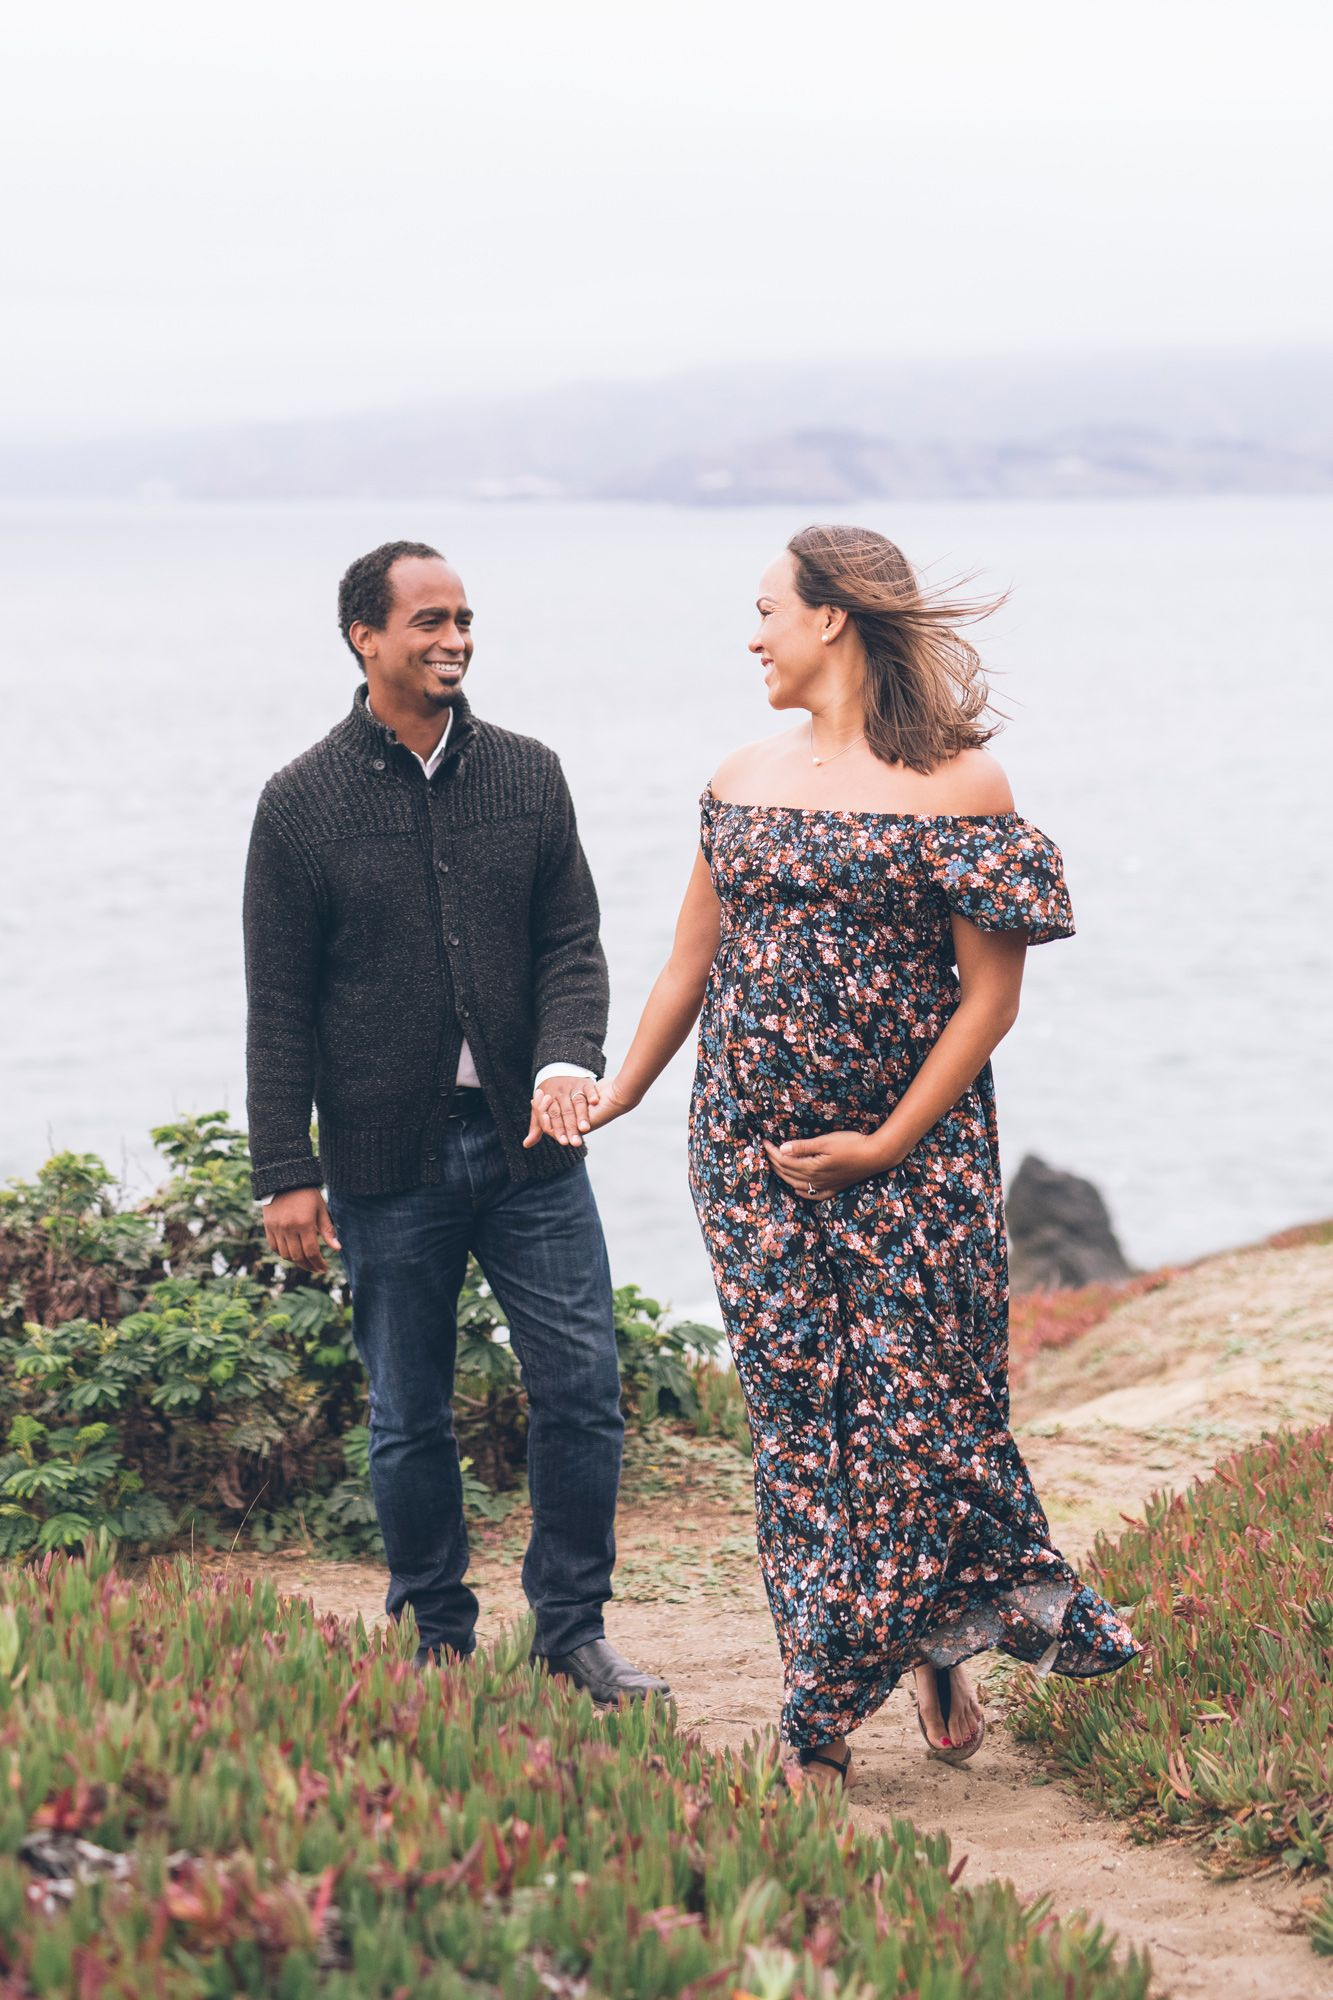 6a17689efe635 Lands End - Best location in San Francisco for a maternity session.  Maternity photoshoot ideas. #sanfranciscophotographer